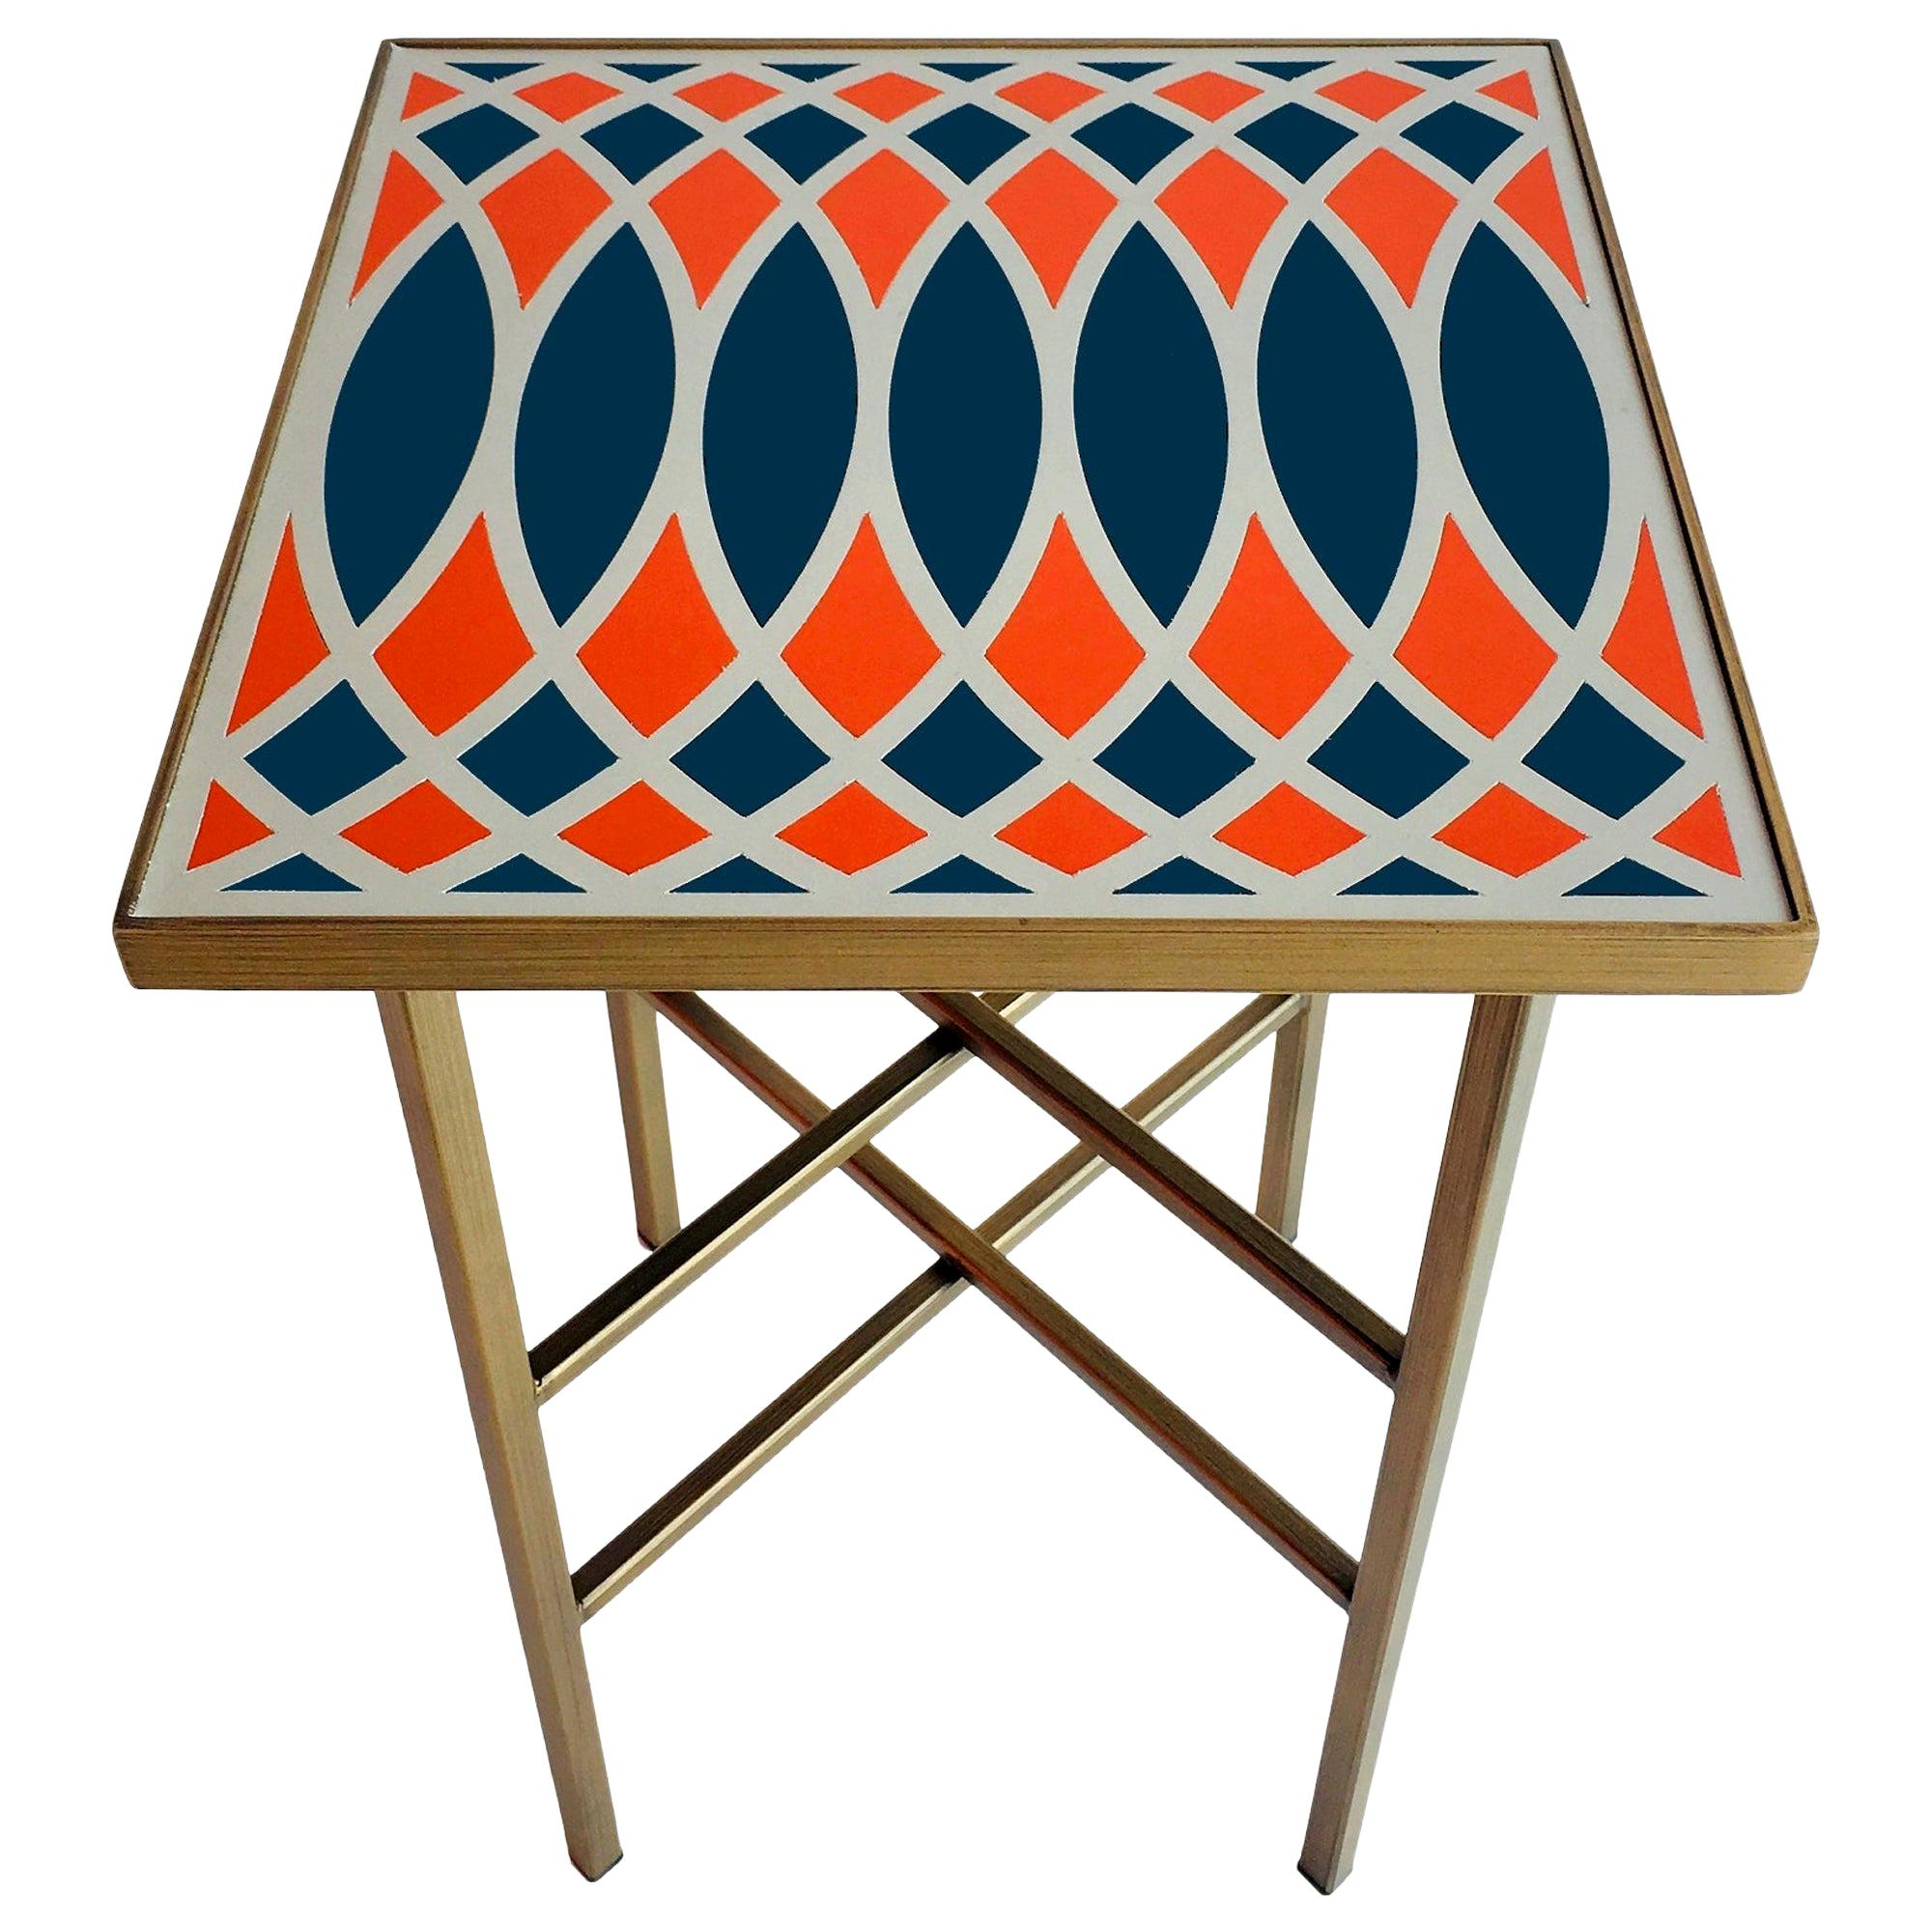 Motif Side Table Designed by Analogia Project, Made in Italy